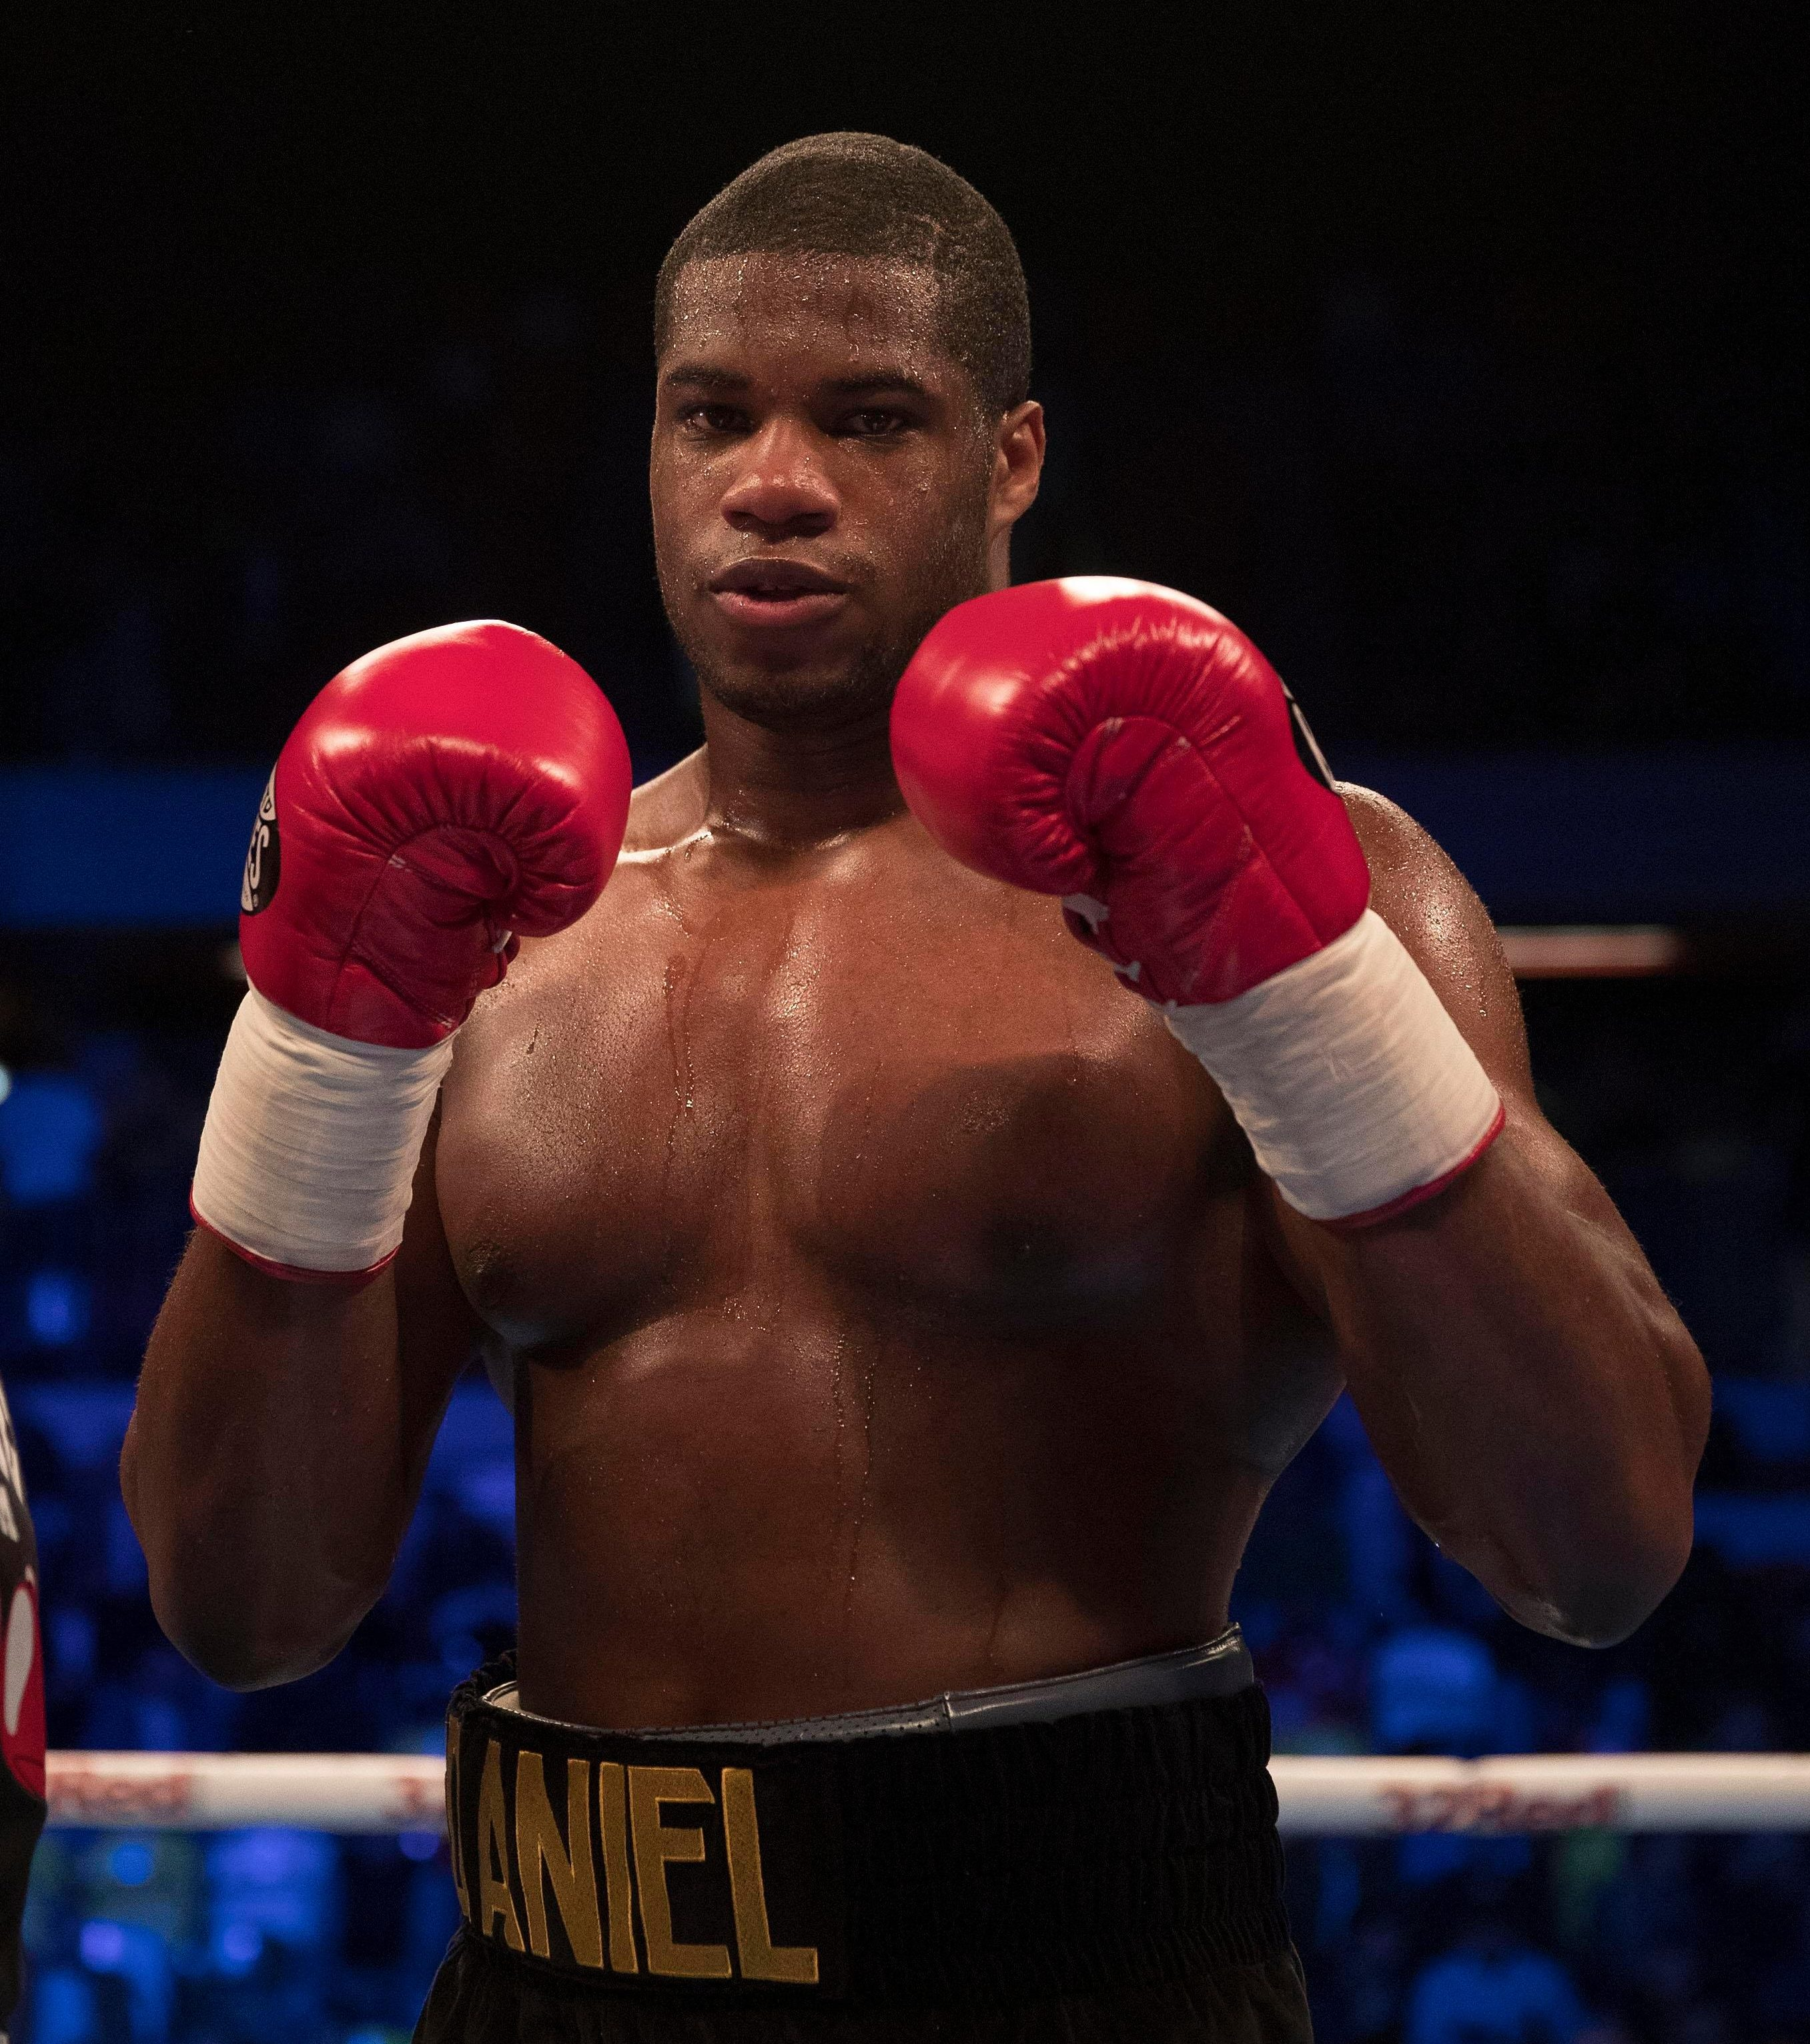 Daniel Dubois was rumoured to have floored Anthony Joshua in the gym